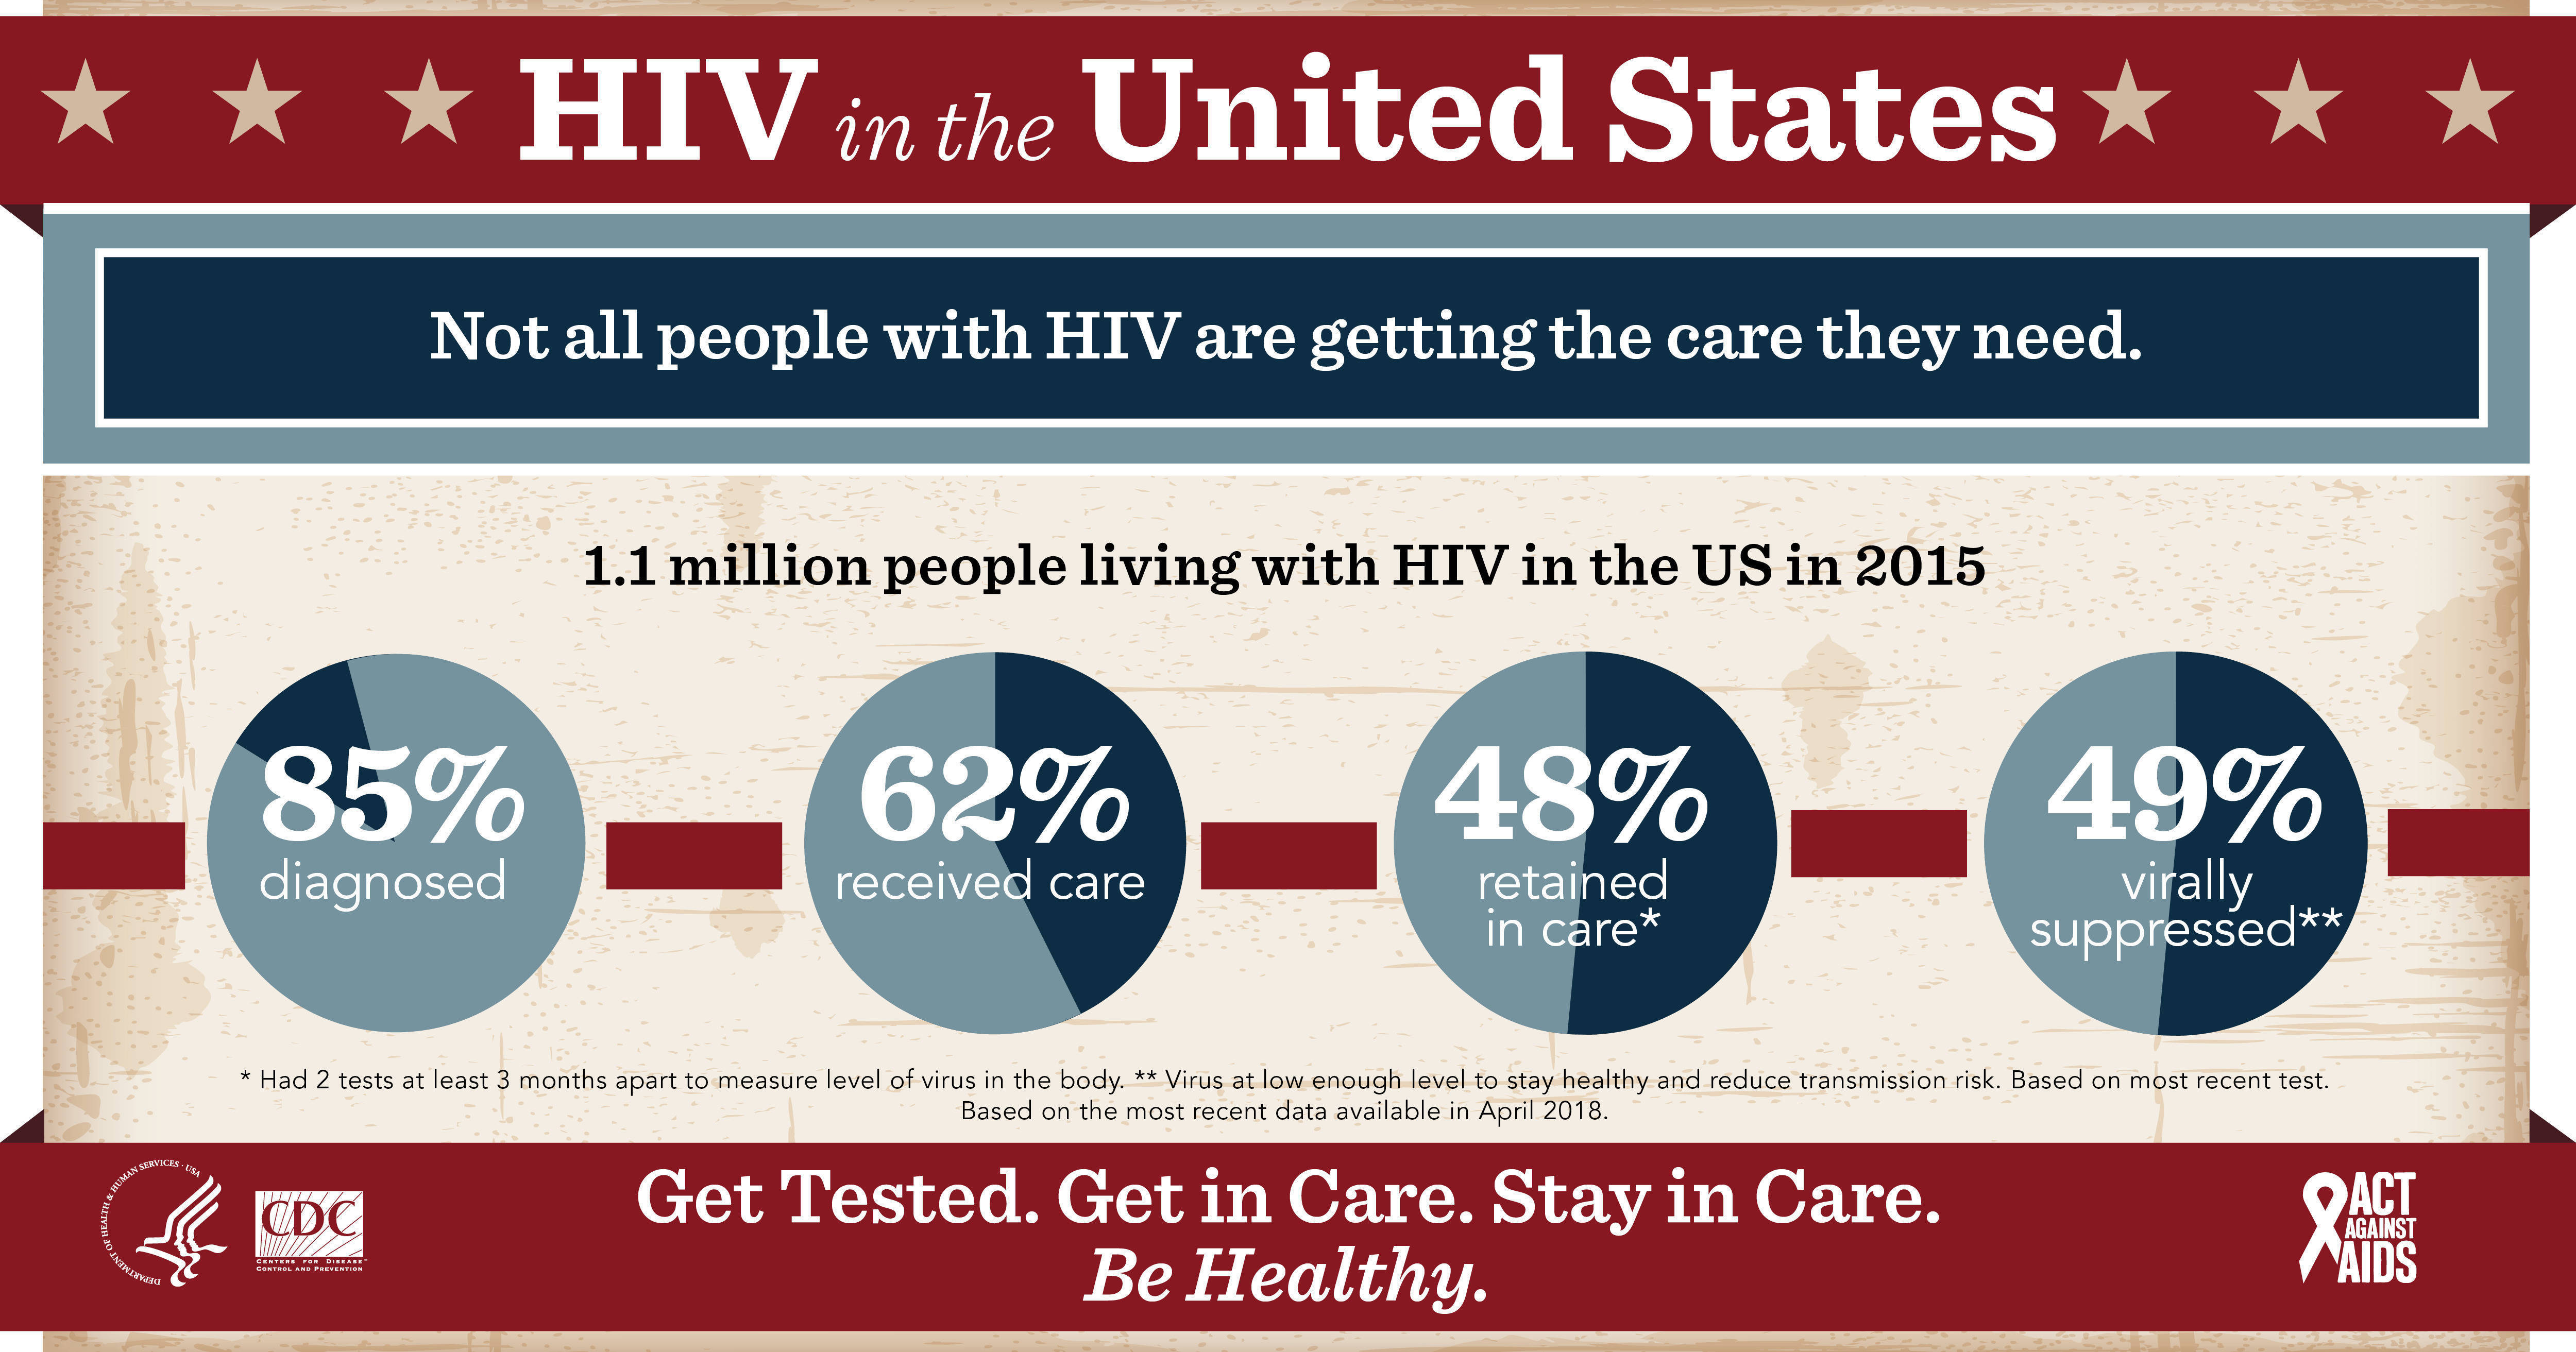 Union County to Host Rutgers HIV Prevention Community Forum